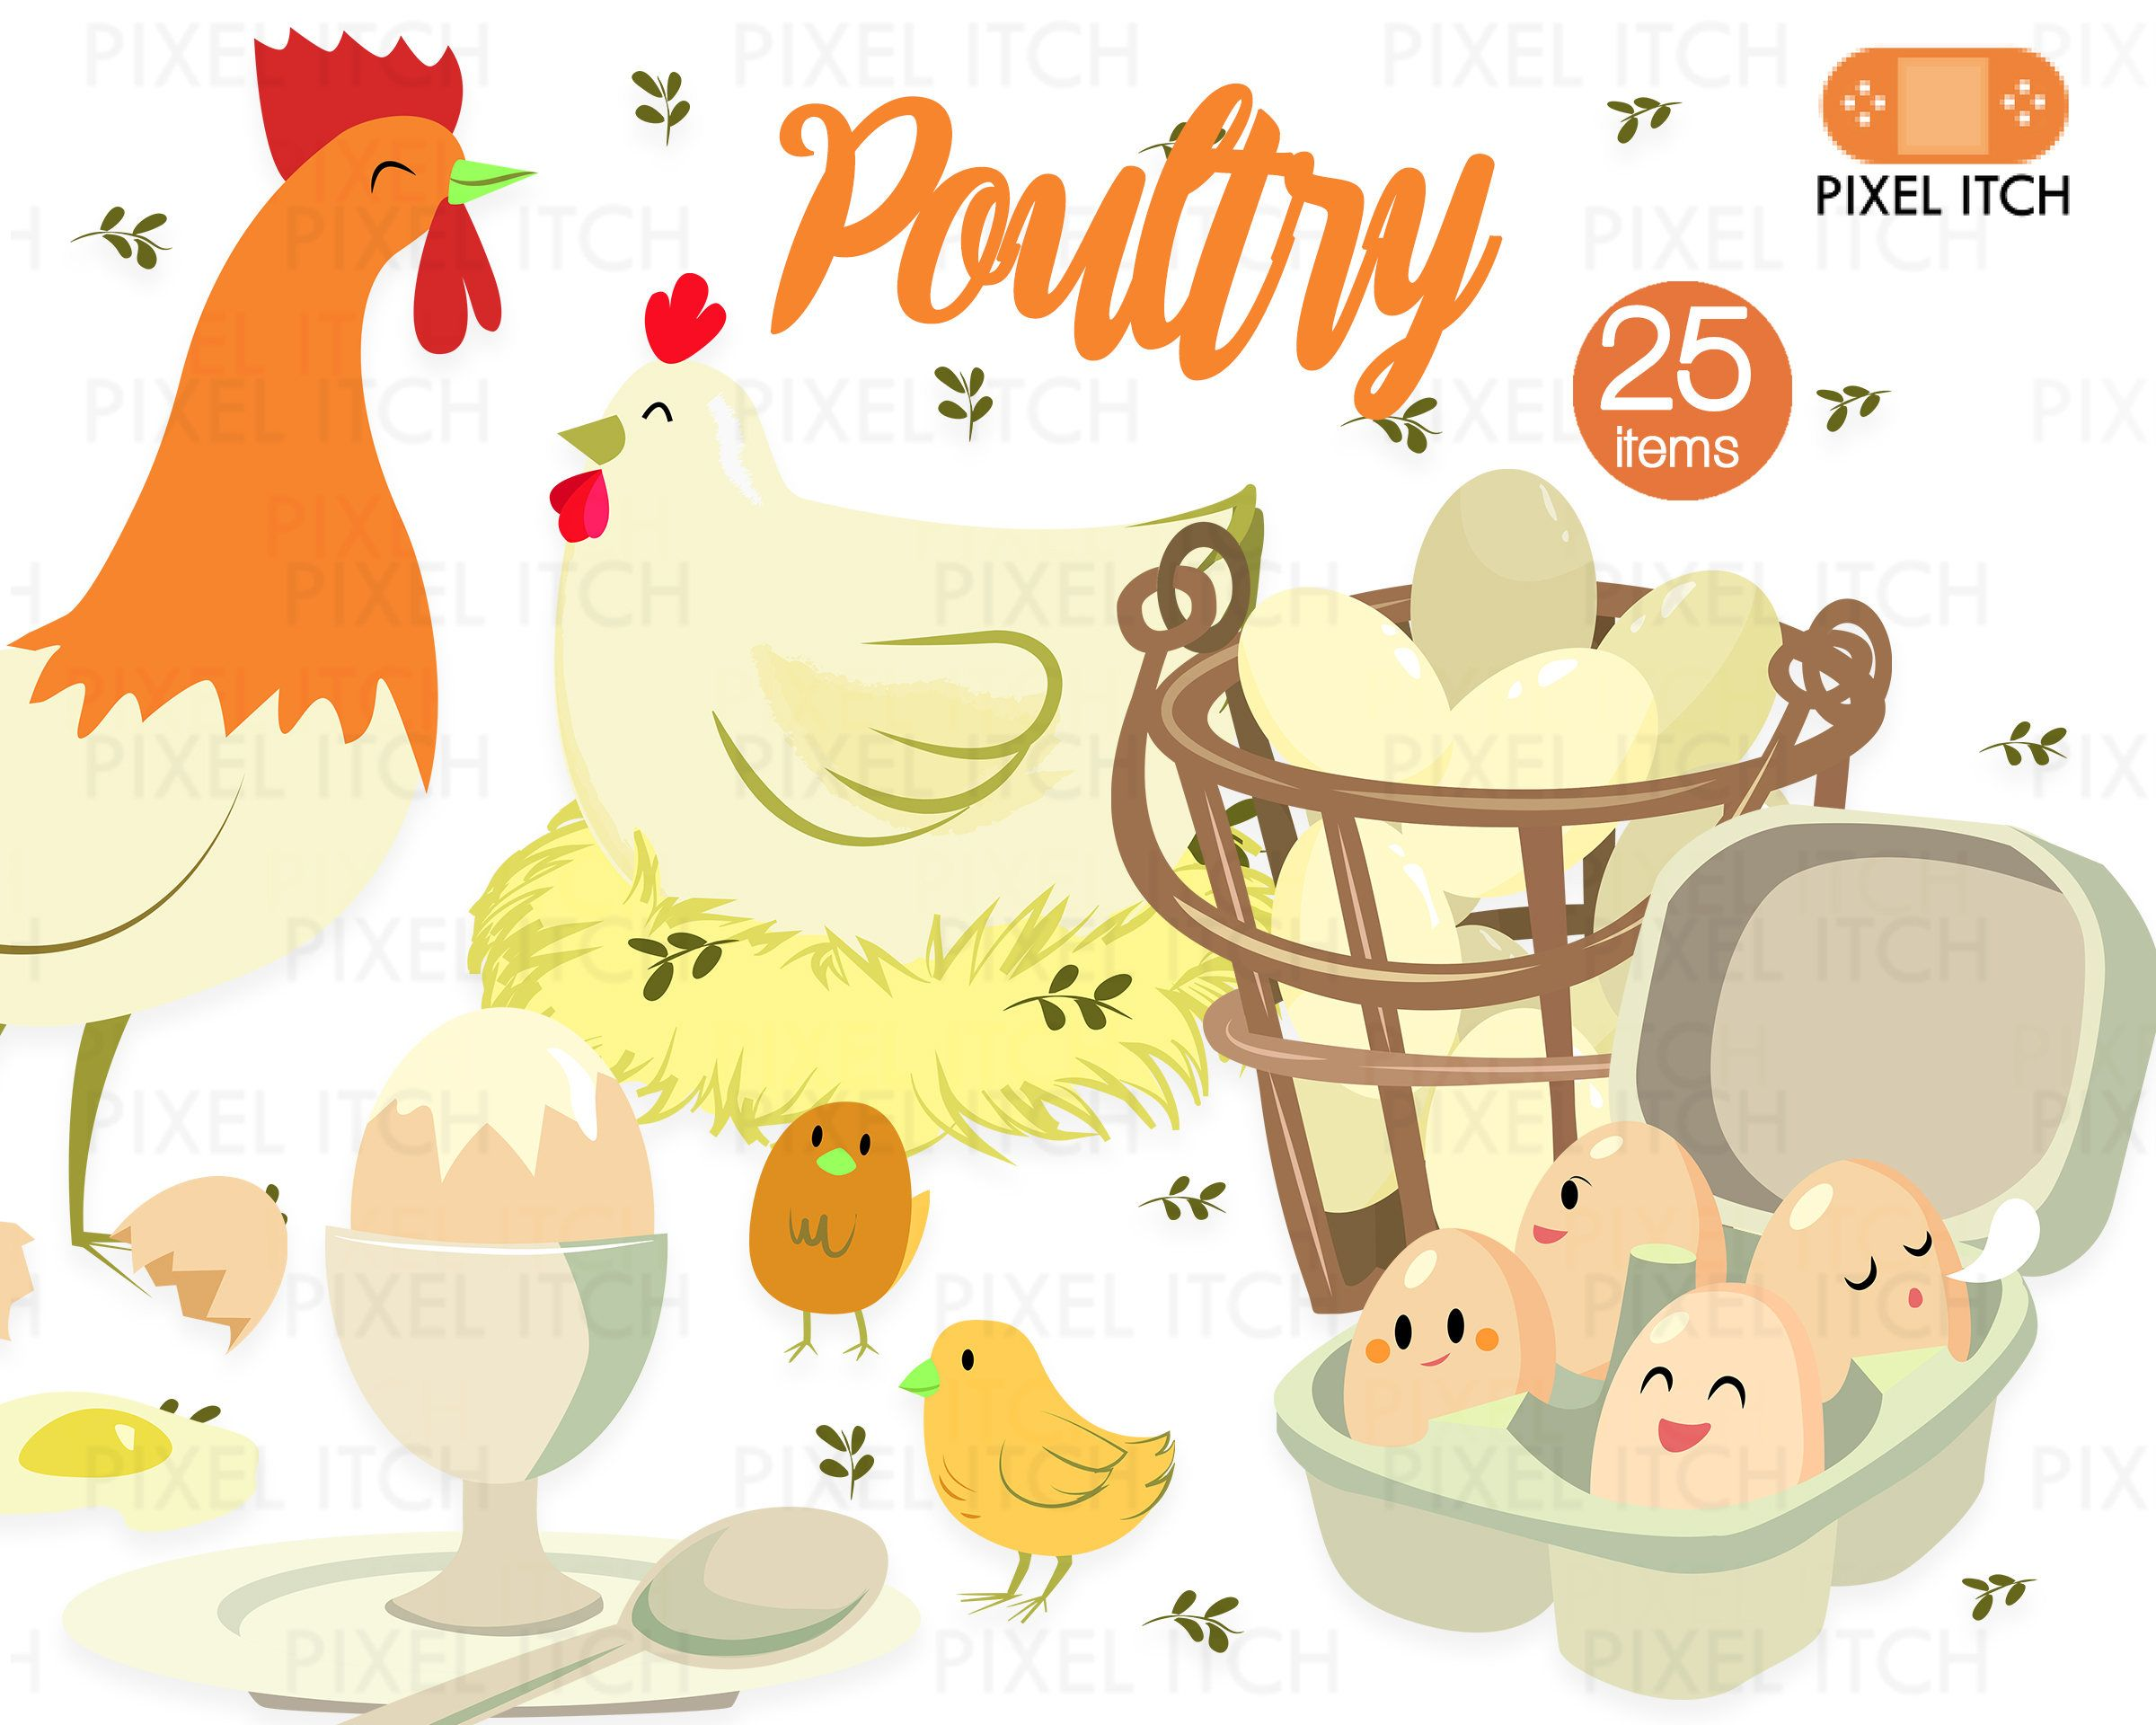 medium resolution of poultry illustration farm clipart farm produce chicken clipart rooster clipart nest clipart egg basket clipart cooking egg dishes recipe by